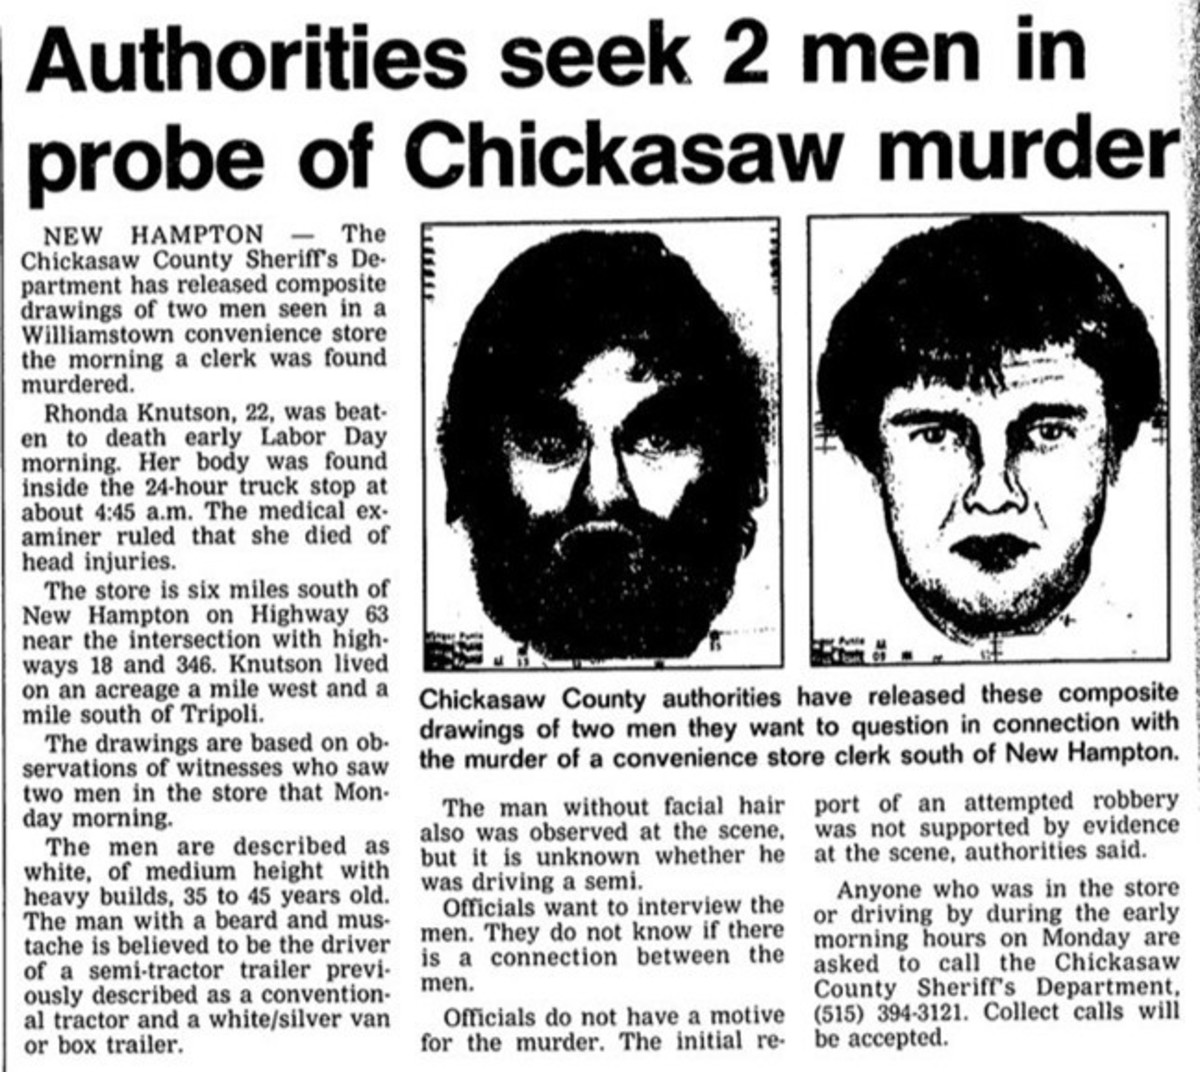 Two composites of suspects were released and mailed to 1,500 truck stops in an effort to identify the murderer of Rhonda Knutson. Photo courtesy of Iowa Cold Cases.